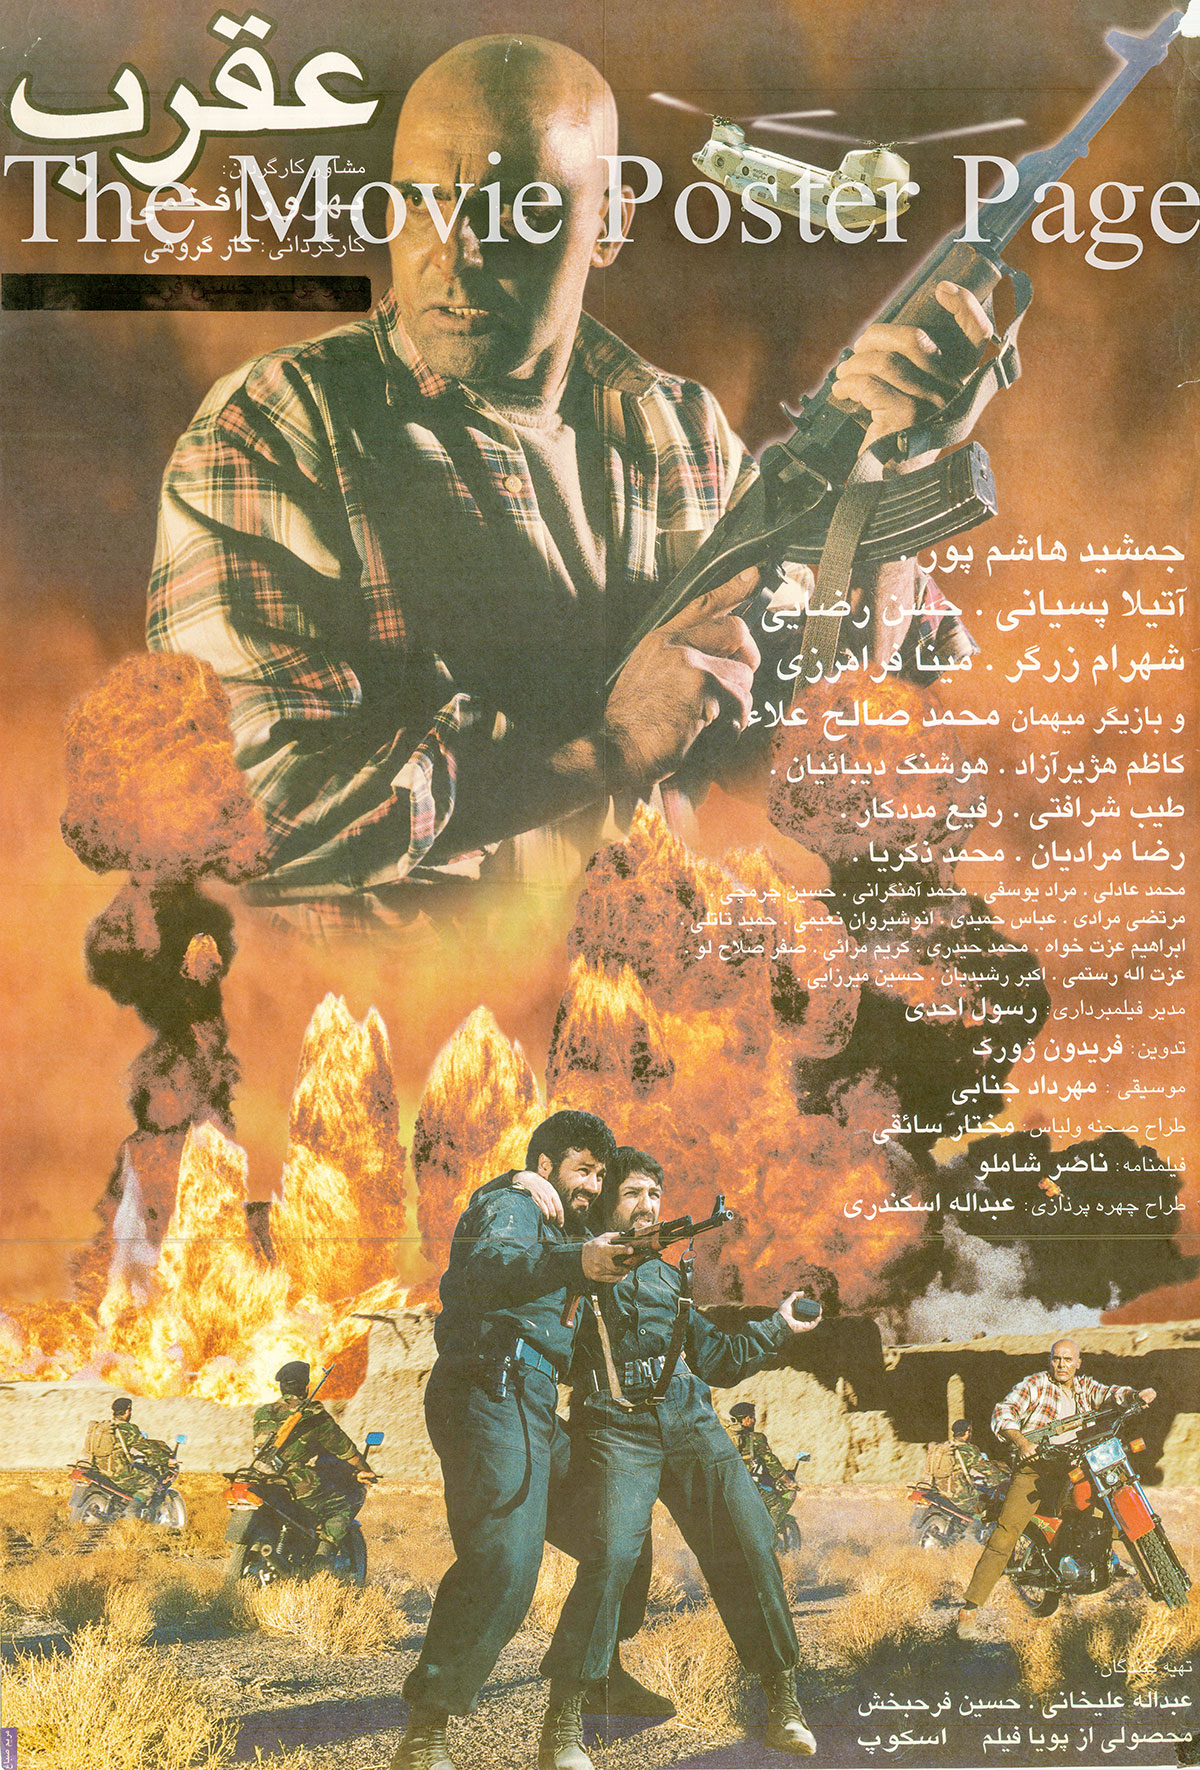 Pictured is an Iranian one-sheet promotional poster for the 1996 Behruz Afkhami film Scorpion starring Jamshid Hashempur as Zolfaghar Hosseini.